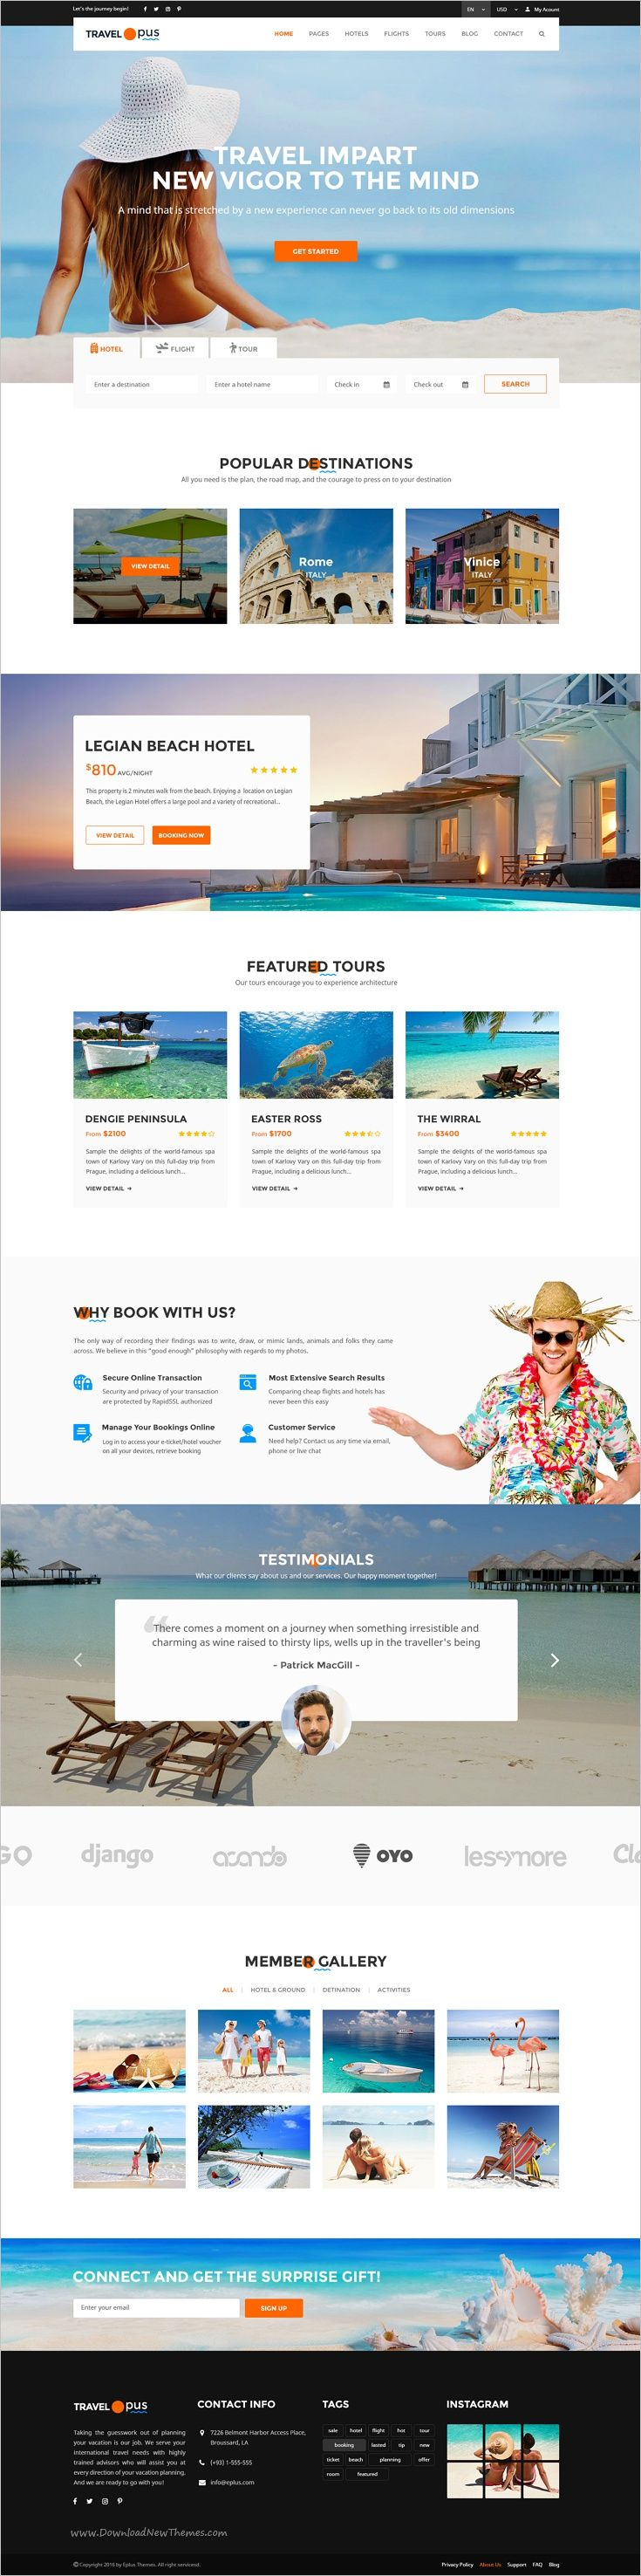 Travel Opus is a beautiful PSD template